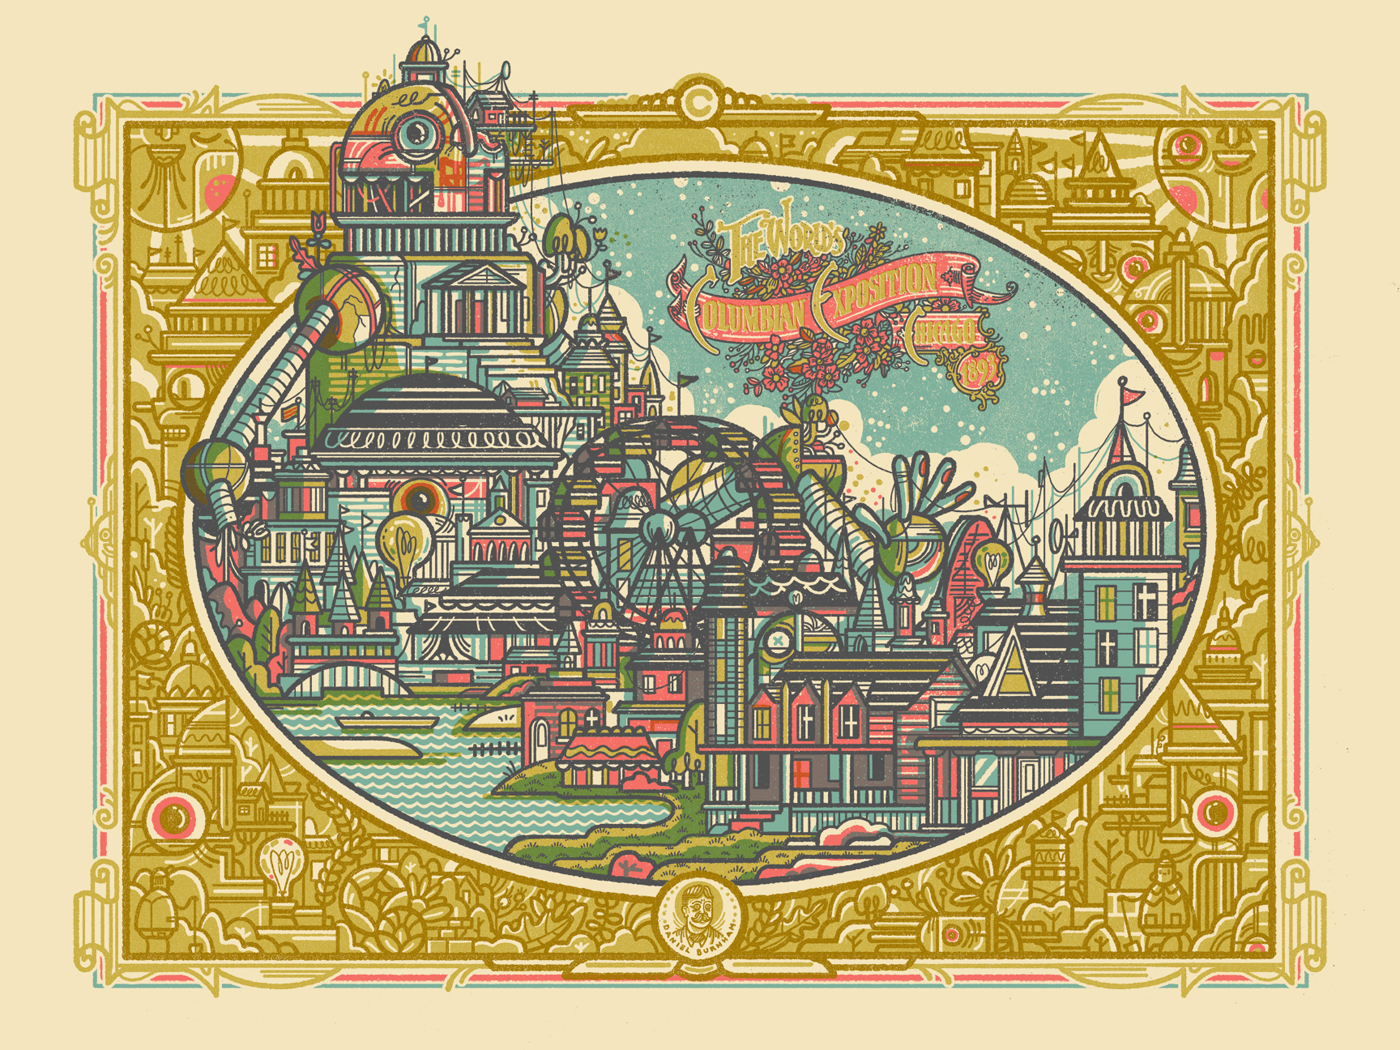 """Chicago Columbian Exposition"" by Drew Millward.  18"" x 24"" Screenprint.  Ed of 100 N.  $45"